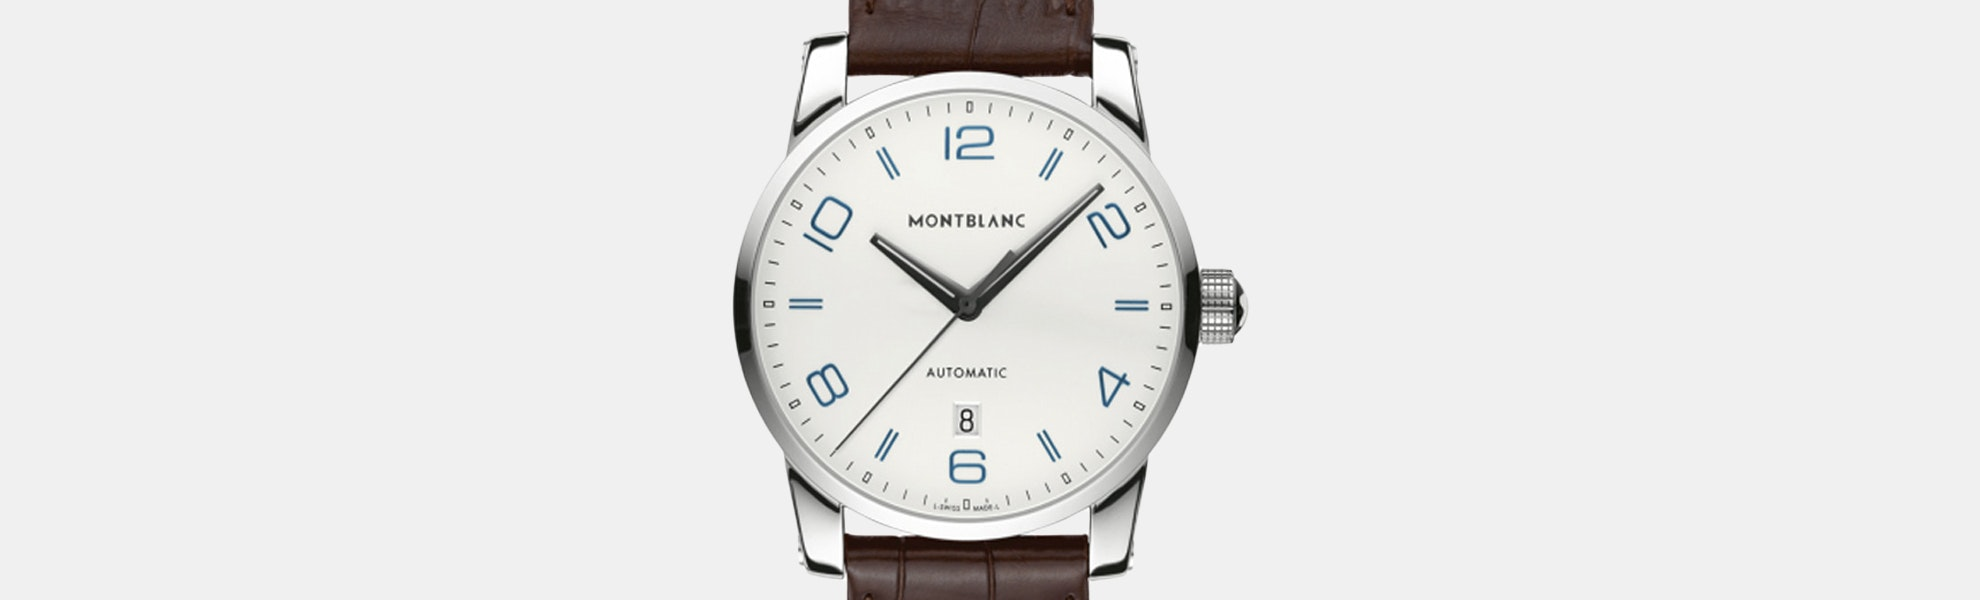 Montblanc Timewalker Automatic Watch